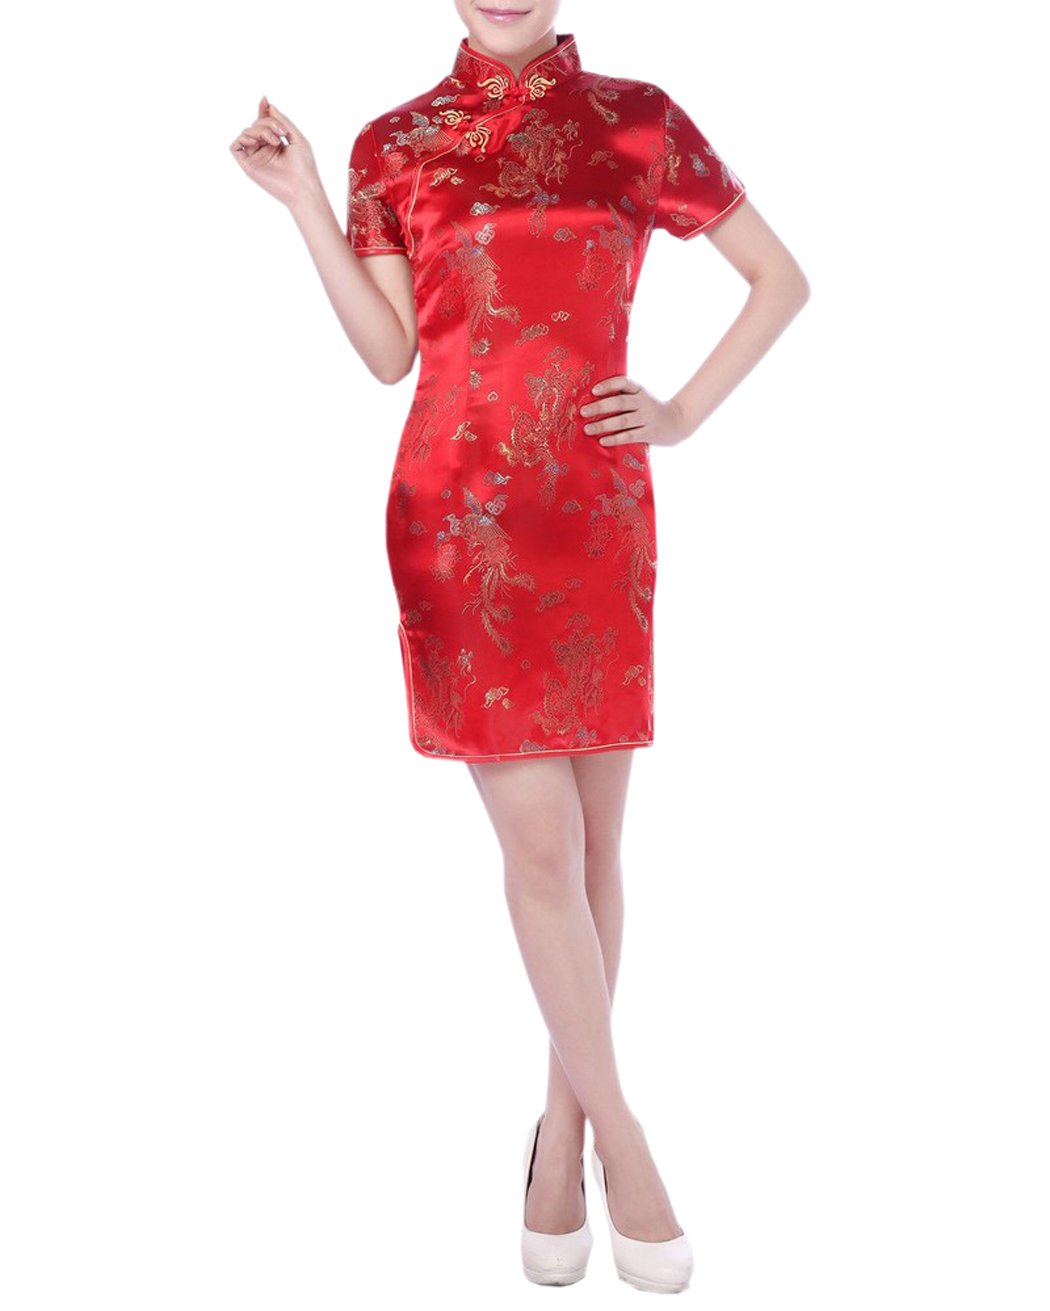 XueXian(TM) Womens Summer Satin Short QiPao Ladies Chinese Traditional Dragon Dresses 6 Colors (China L: Bust 35.83'' Waist 29.92'' Hip 37.8'',red)